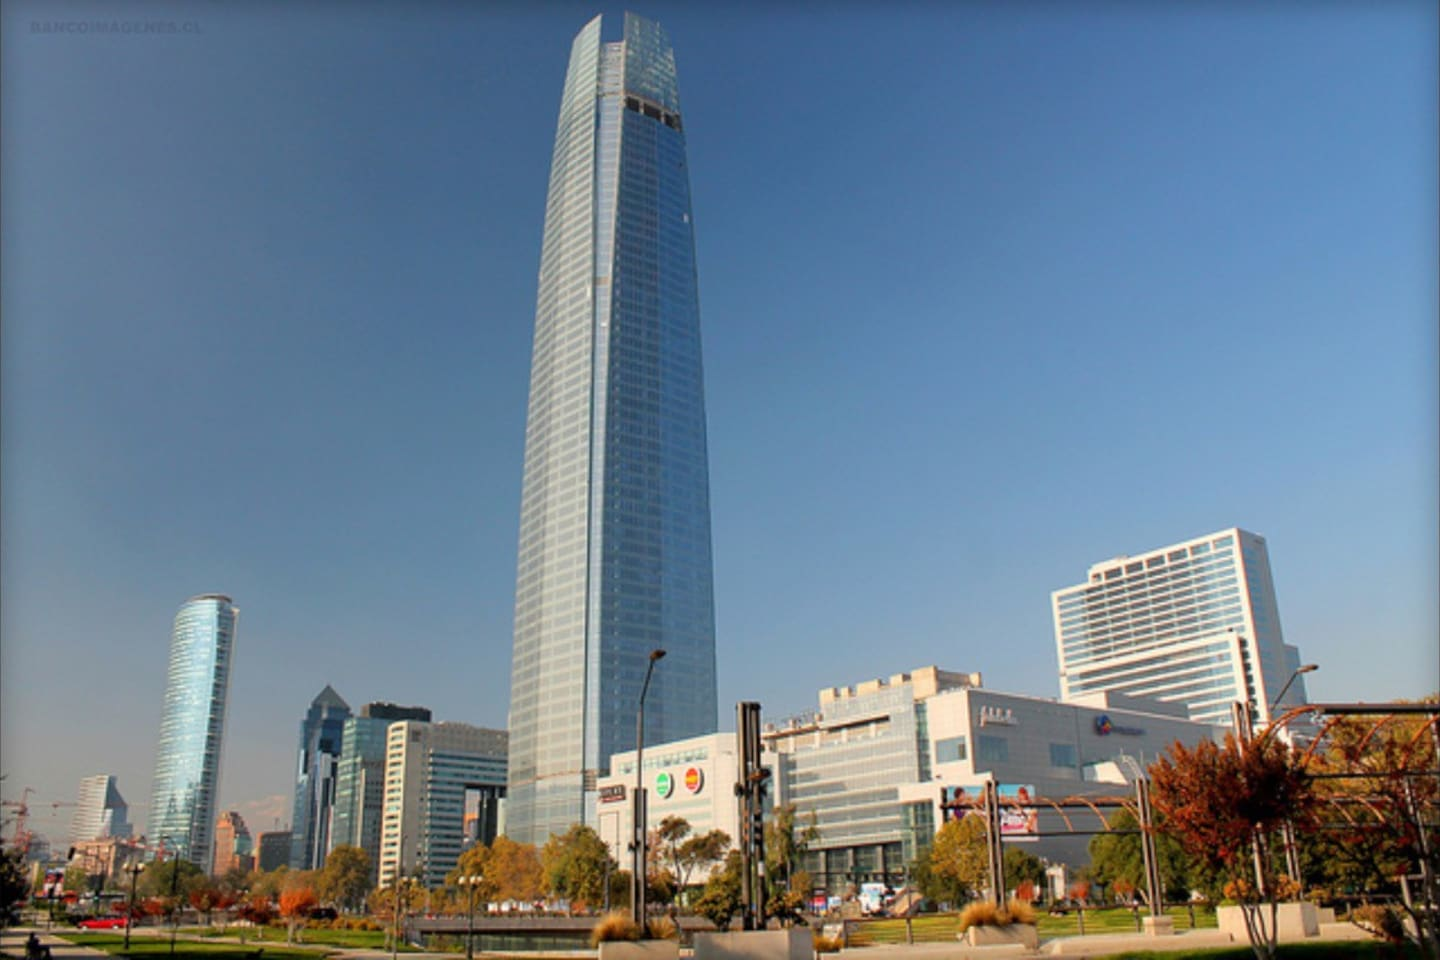 The Costanera Center is located very near us. You have just to walk around the neighborhood and you will find anything you want.